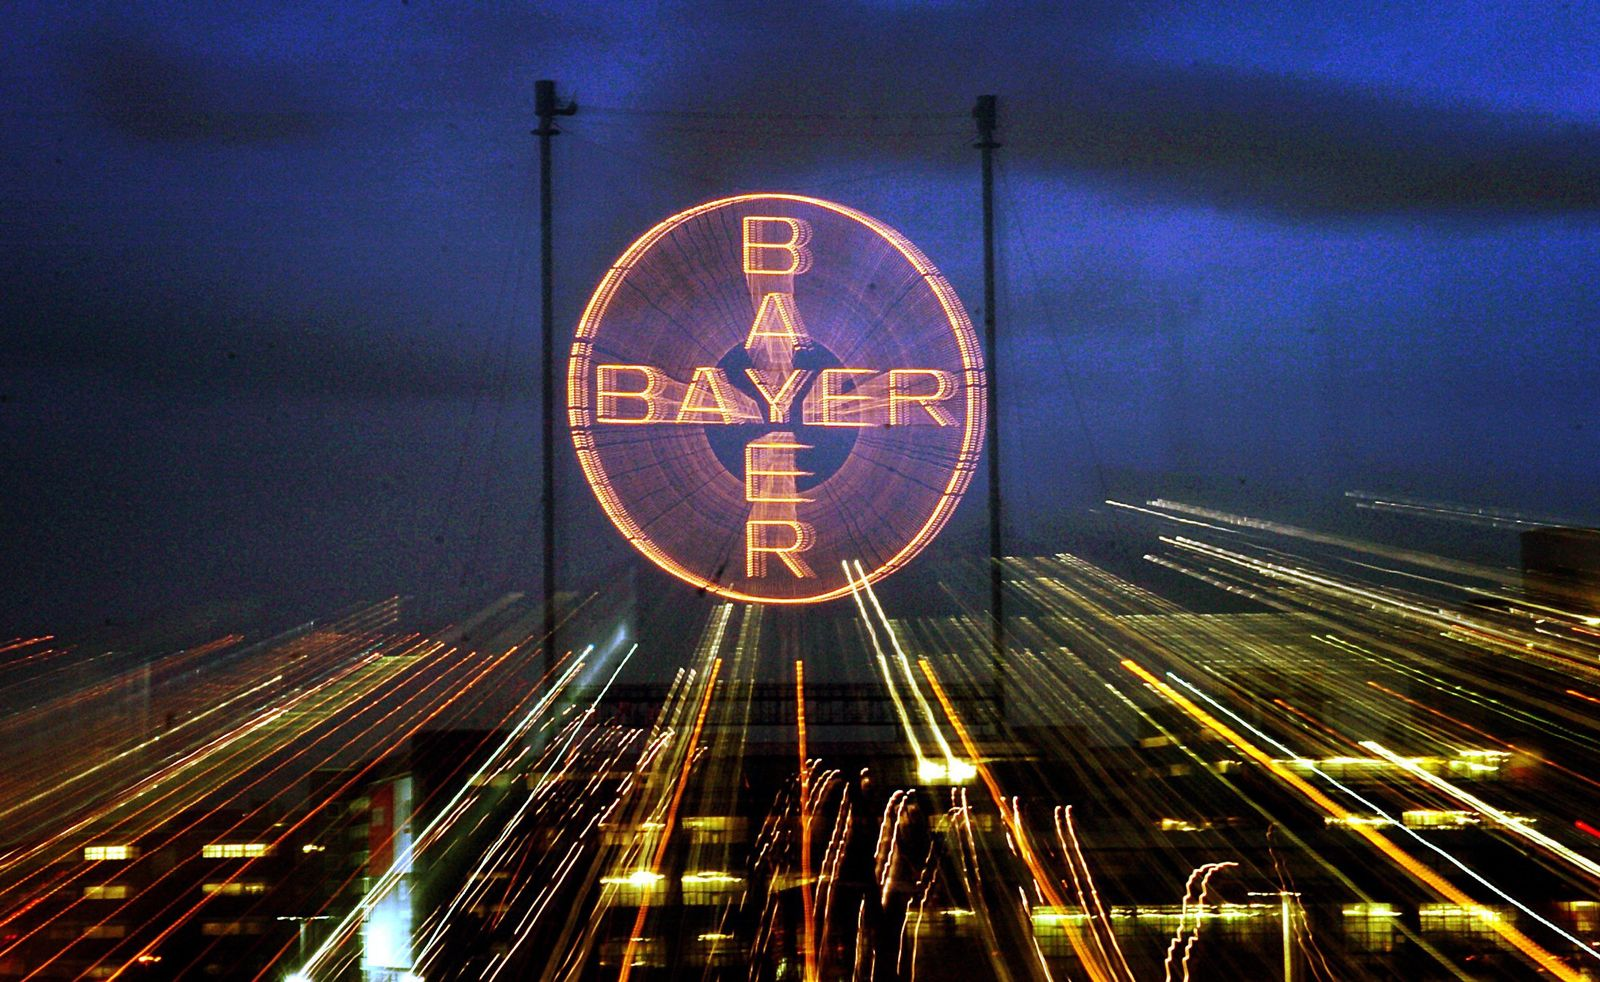 Bayer / Leverkusen / Pharma